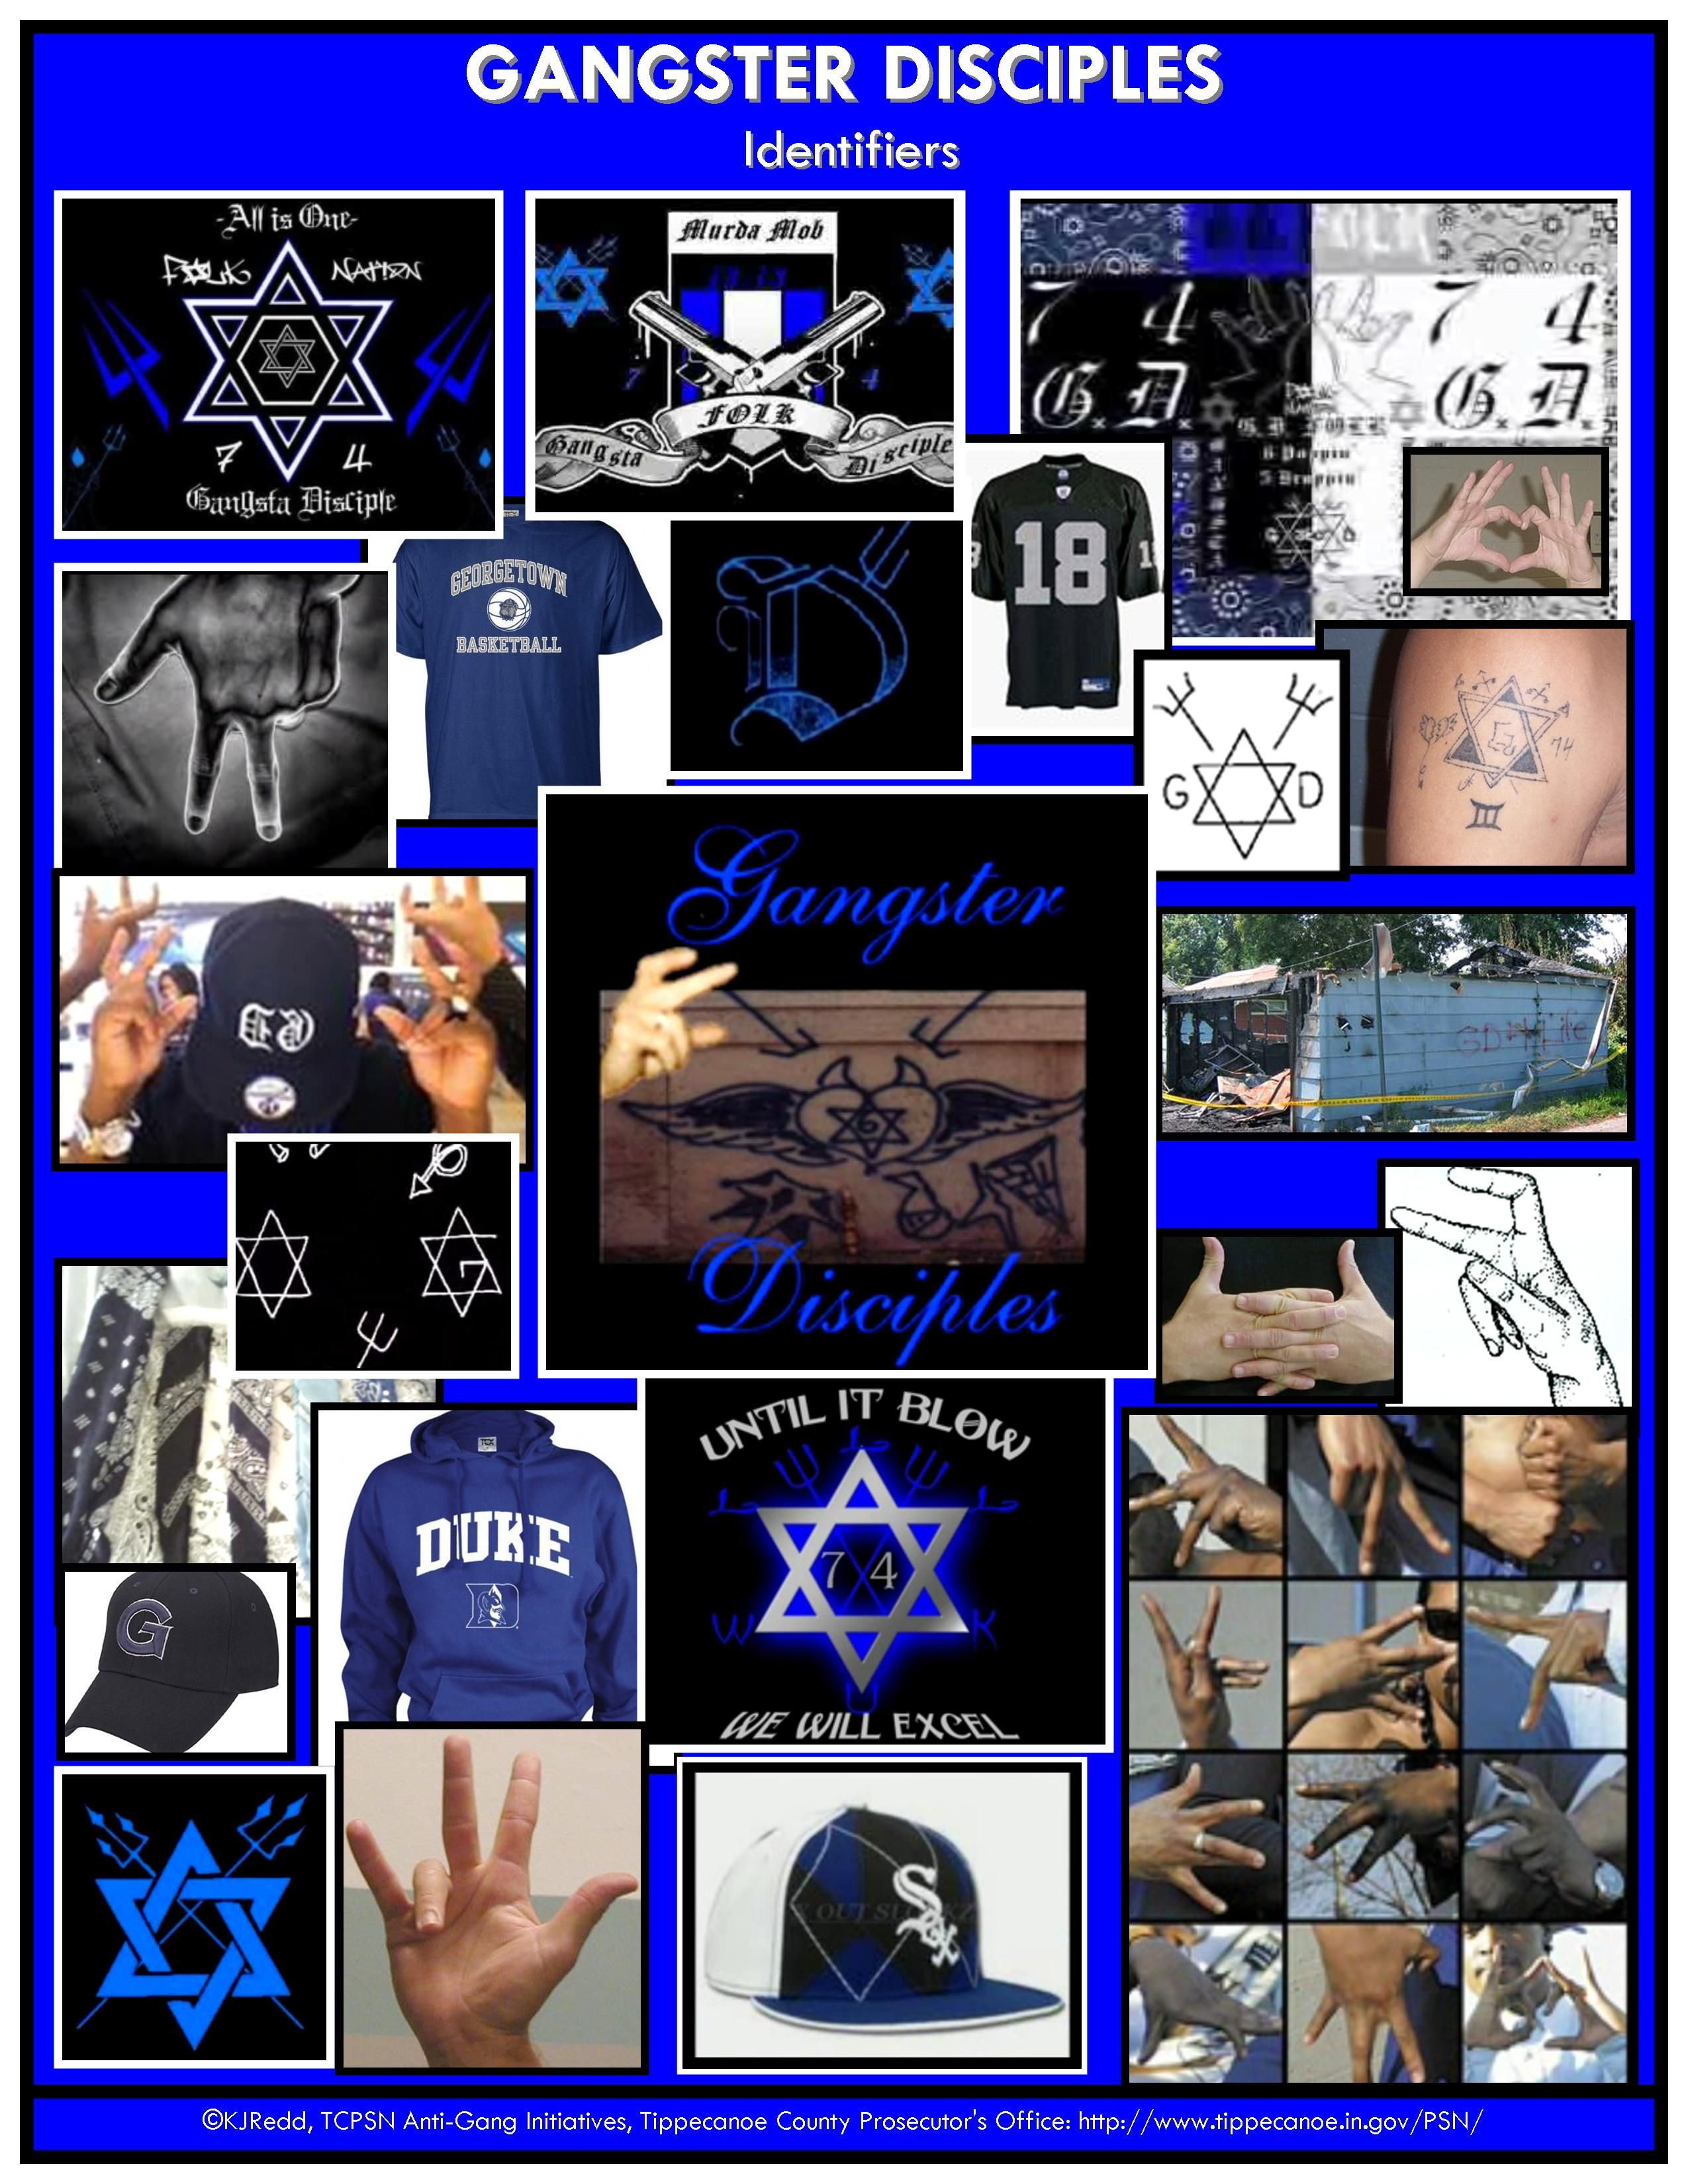 Gangsta diciples gangster disciples ideas for the house gangsta diciples gangster disciples buycottarizona Choice Image